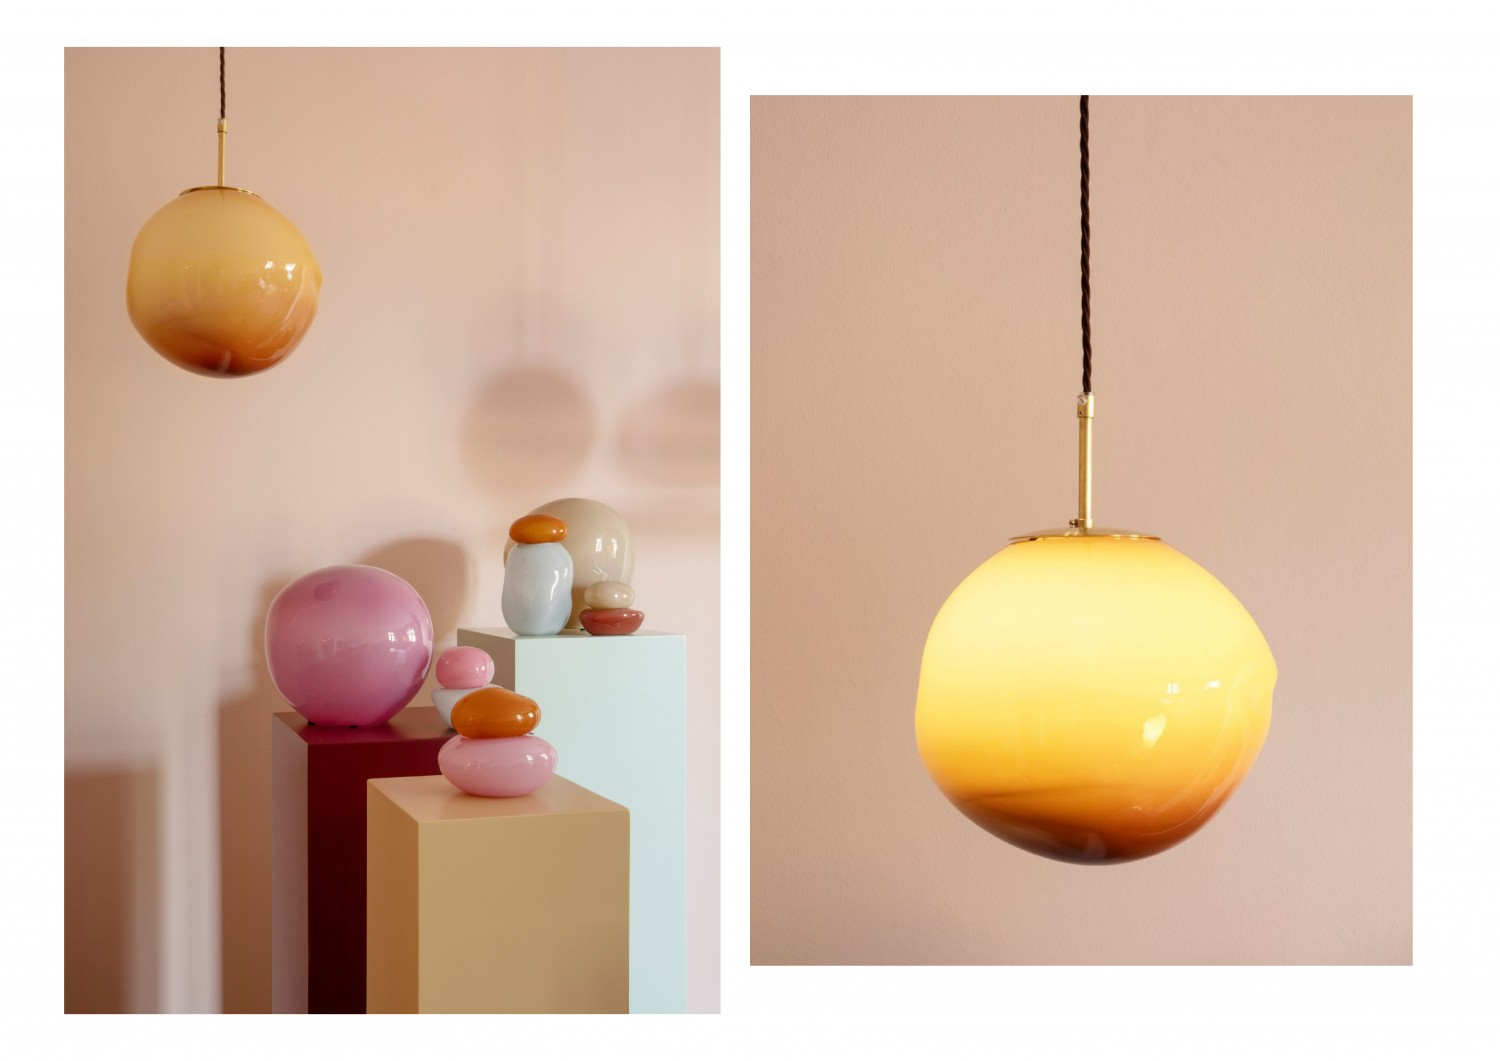 Helle Mardahl Candy Collection - handmade glass lamps and bonbonnieres